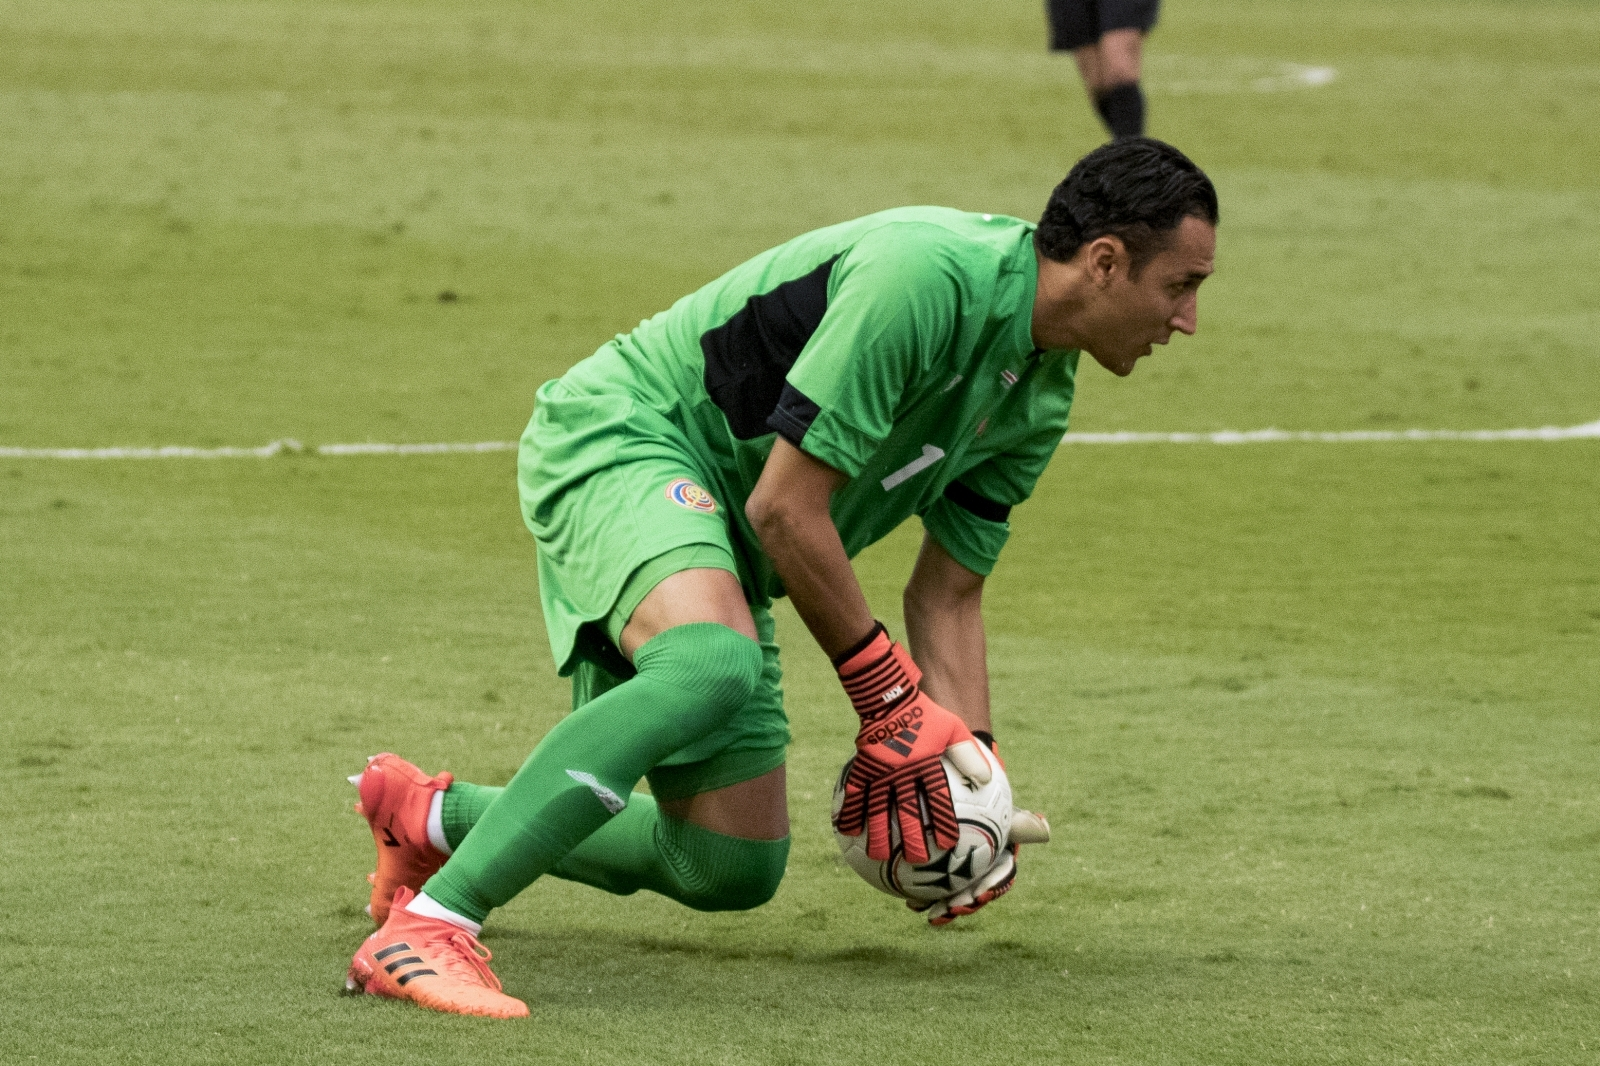 Real Madrid goalkeeper Keylor Navas withdraws from Costa Rica